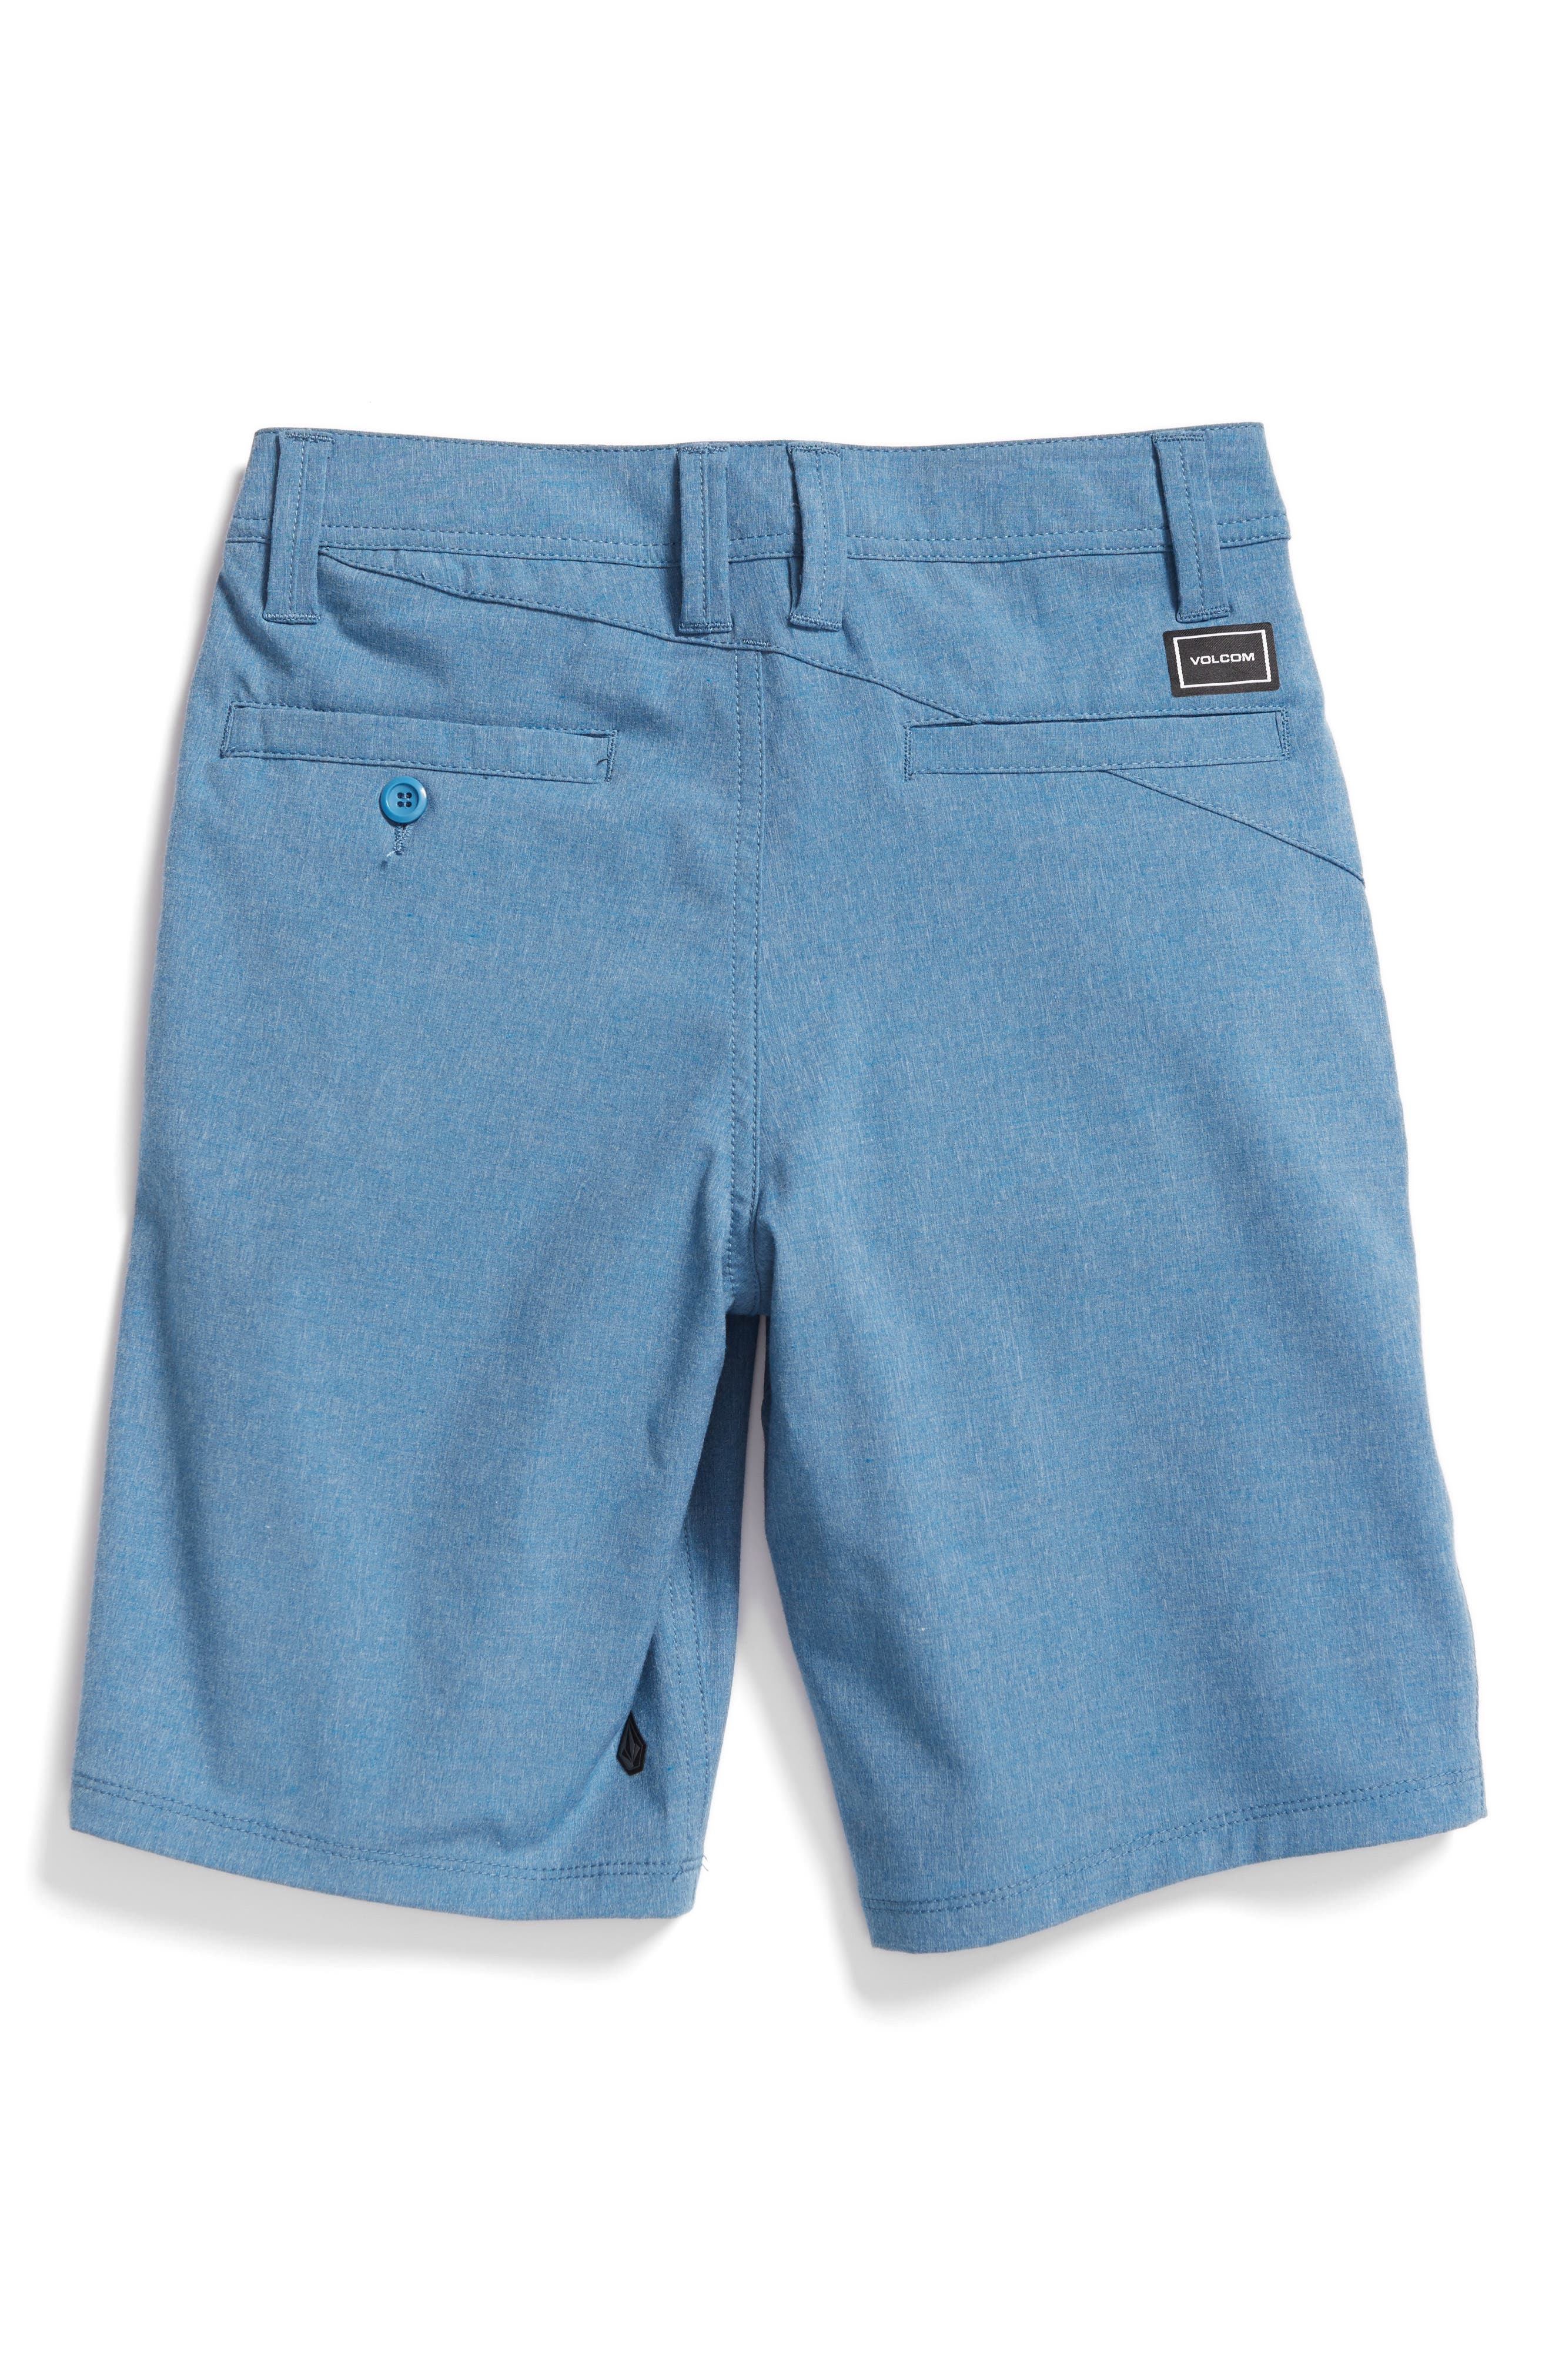 Alternate Image 2  - Volcom Surf N' Turf Static Hybrid Shorts (Toddler Boys, Little Boys & Big Boys)